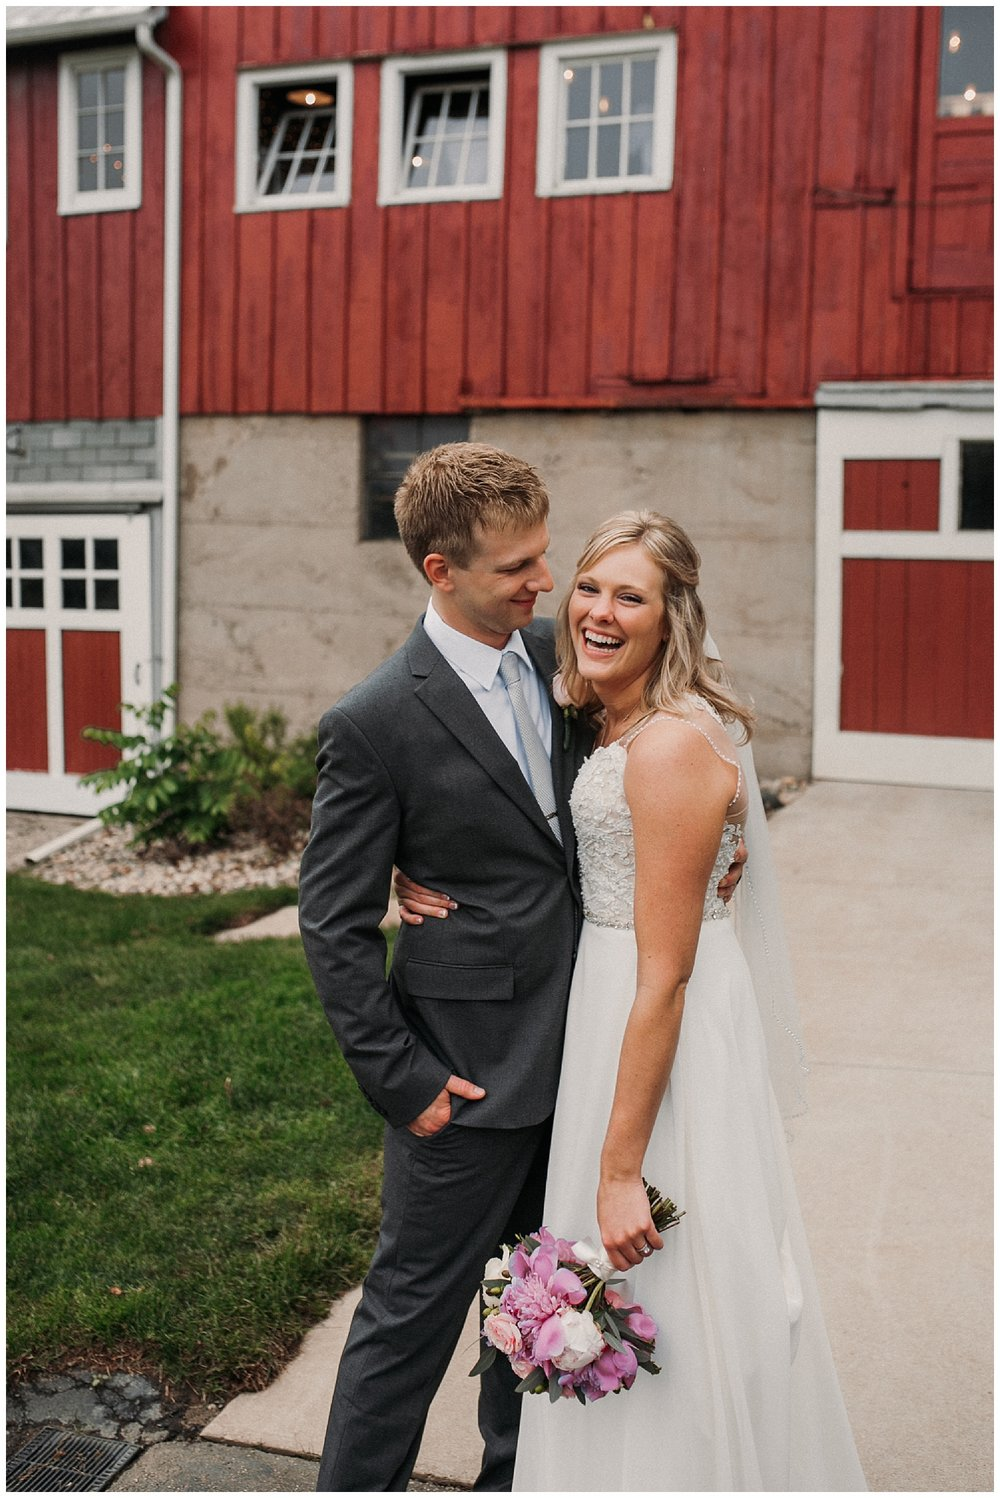 lindybeth photography - persenaire wedding - the old wooden barn-124.jpg